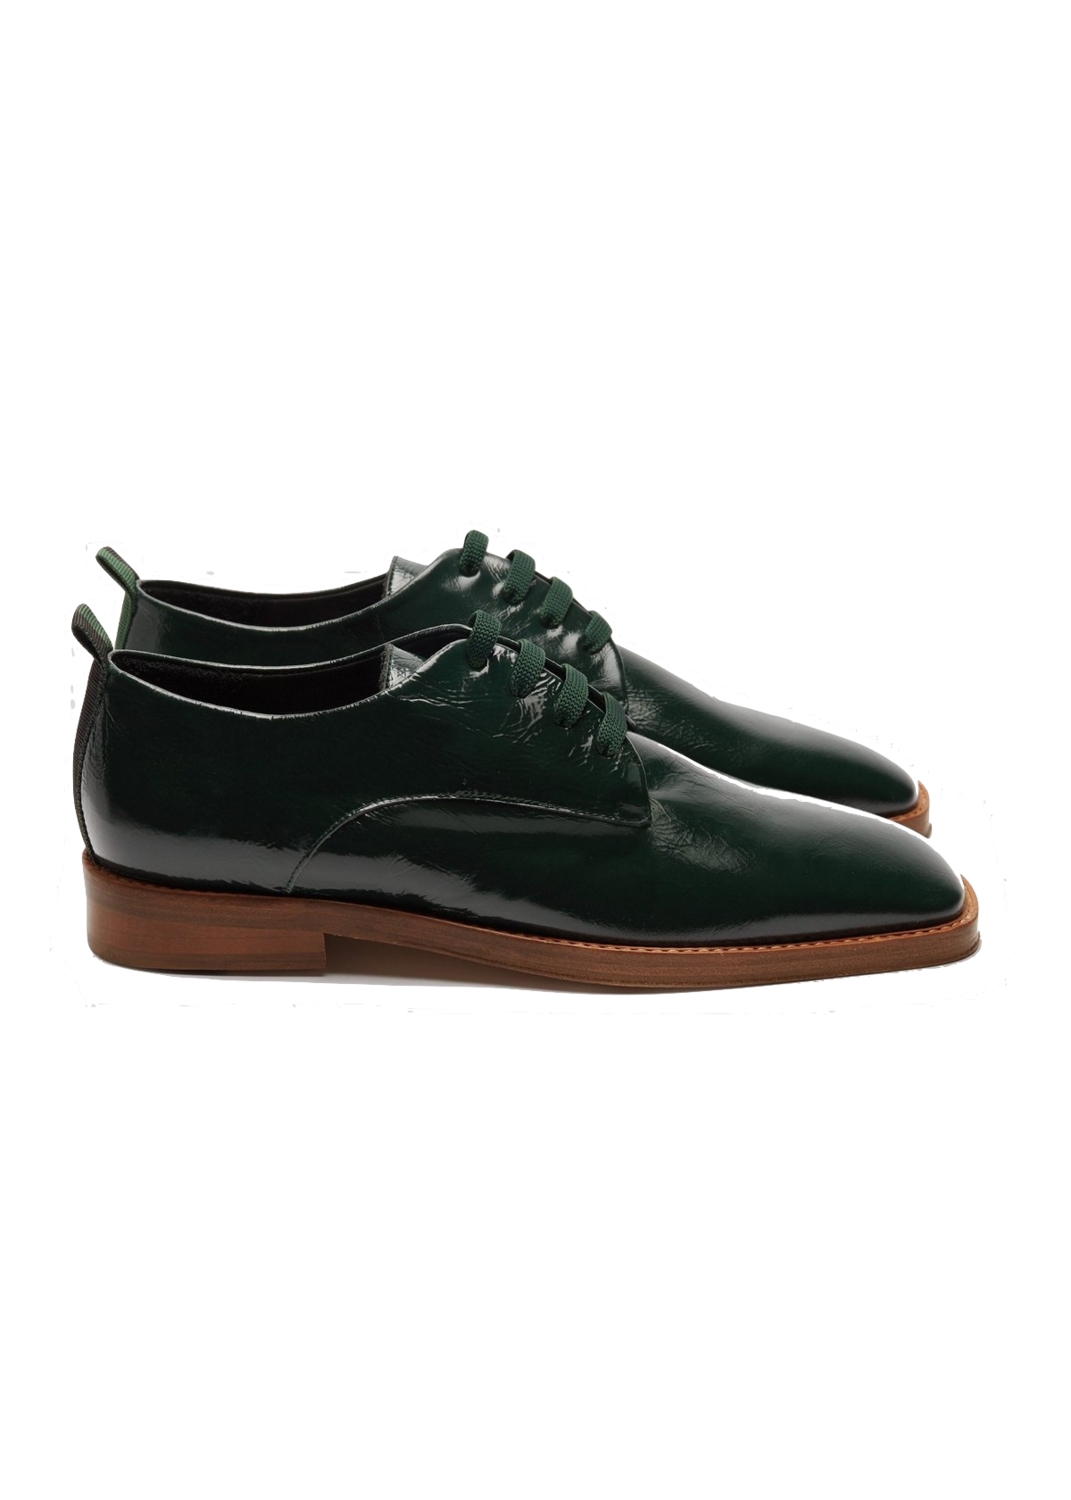 Missta London  Patent Green Oxford Lace Up